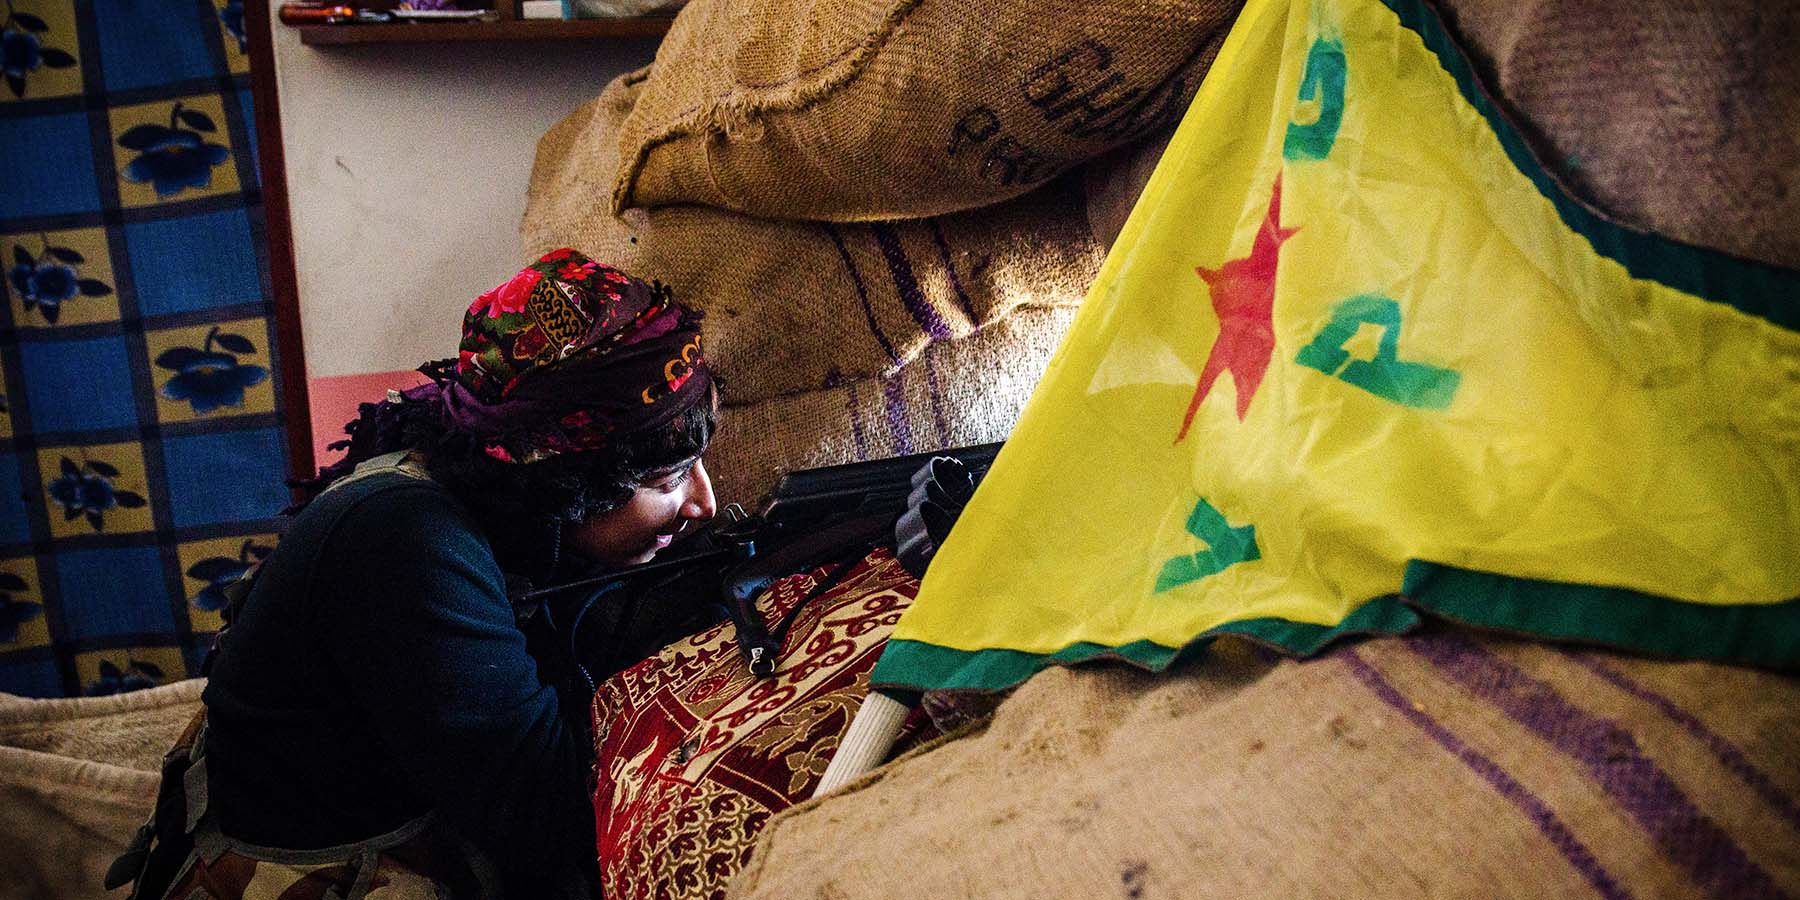 A YPG fighter takes position against the Islamic State in the besieged border town of Kobani on Dec. 21, 2014.